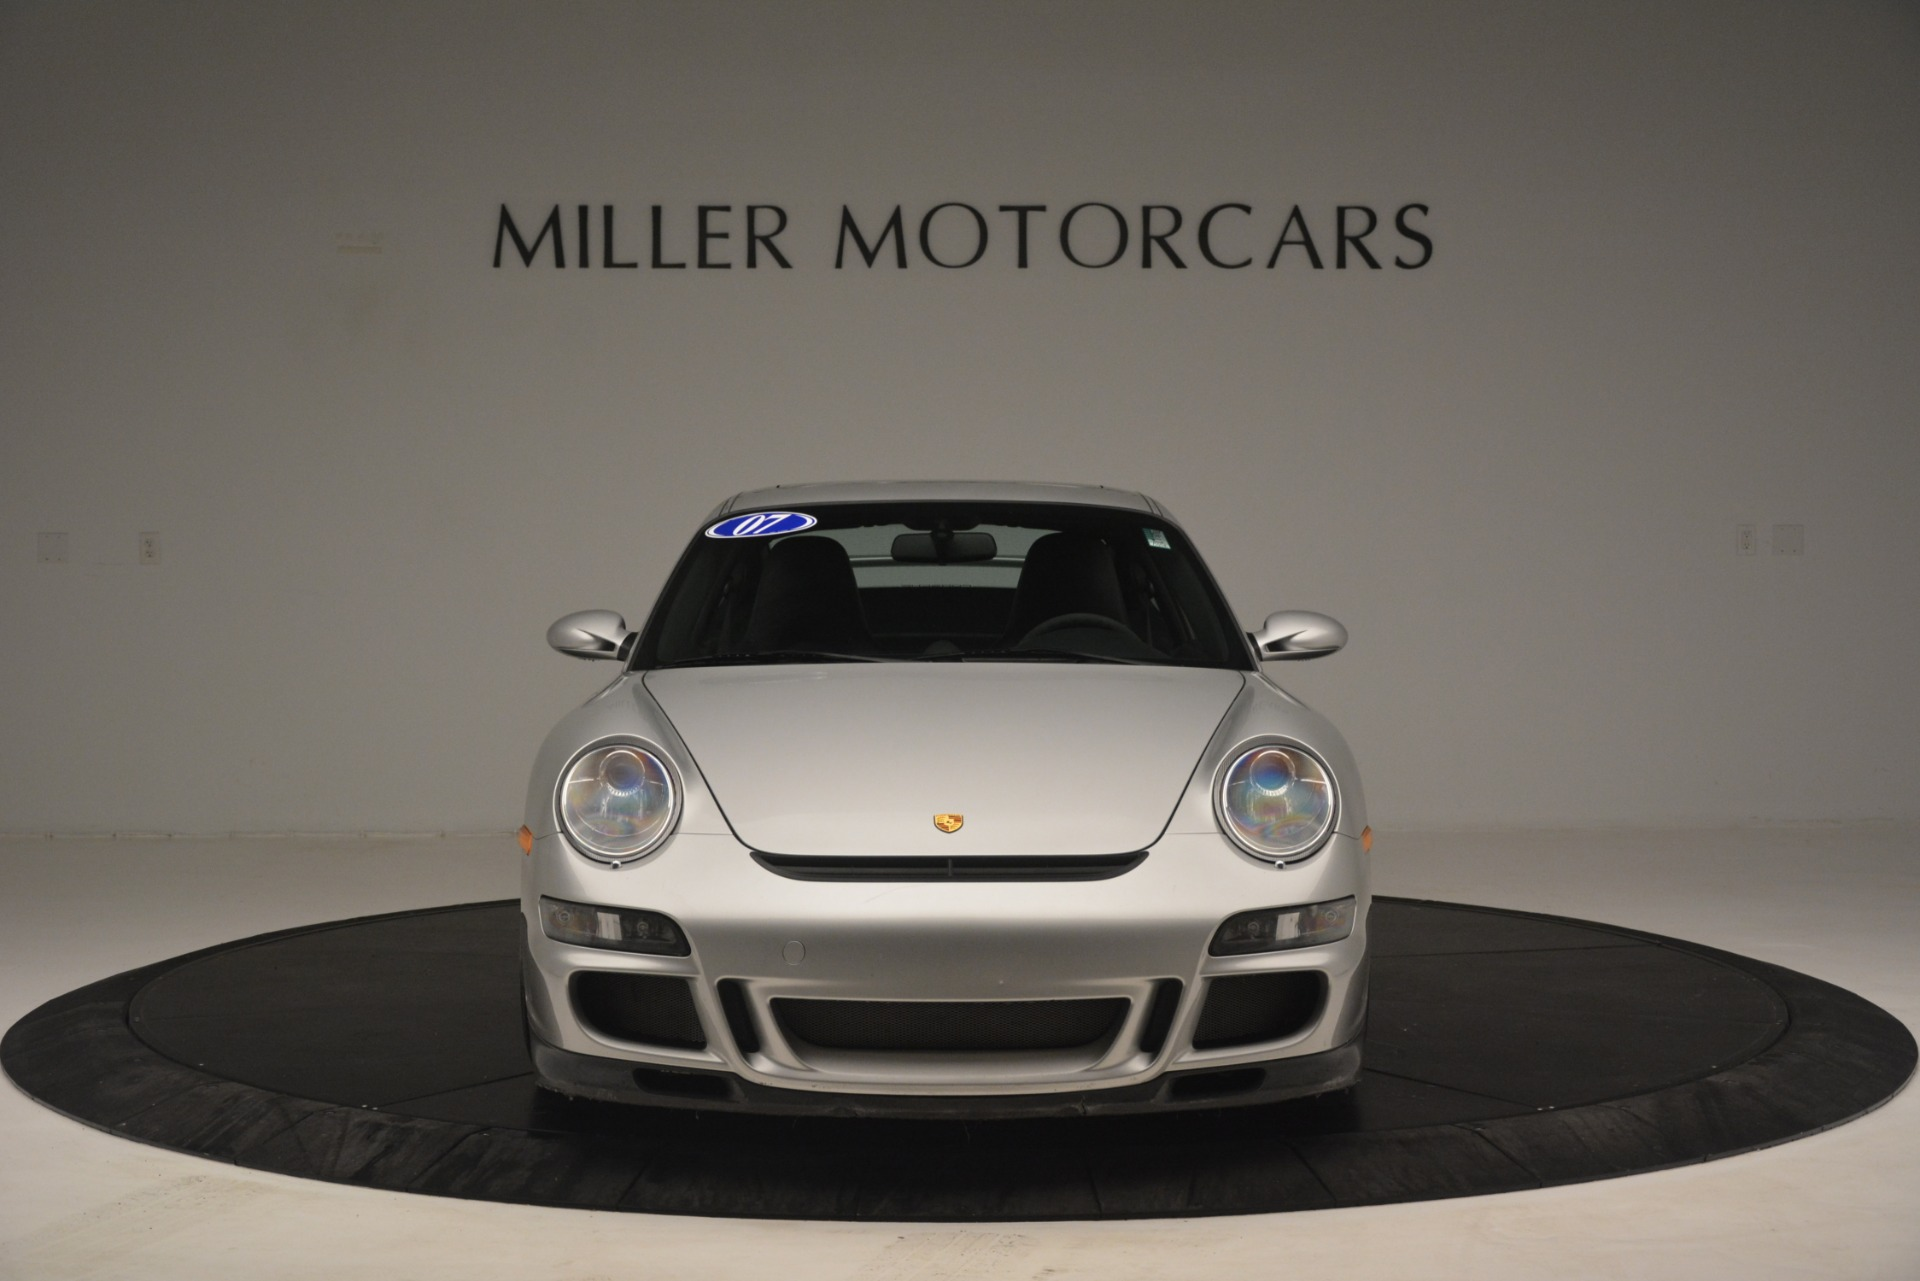 Used 2007 Porsche 911 GT3 For Sale In Greenwich, CT 3120_p12